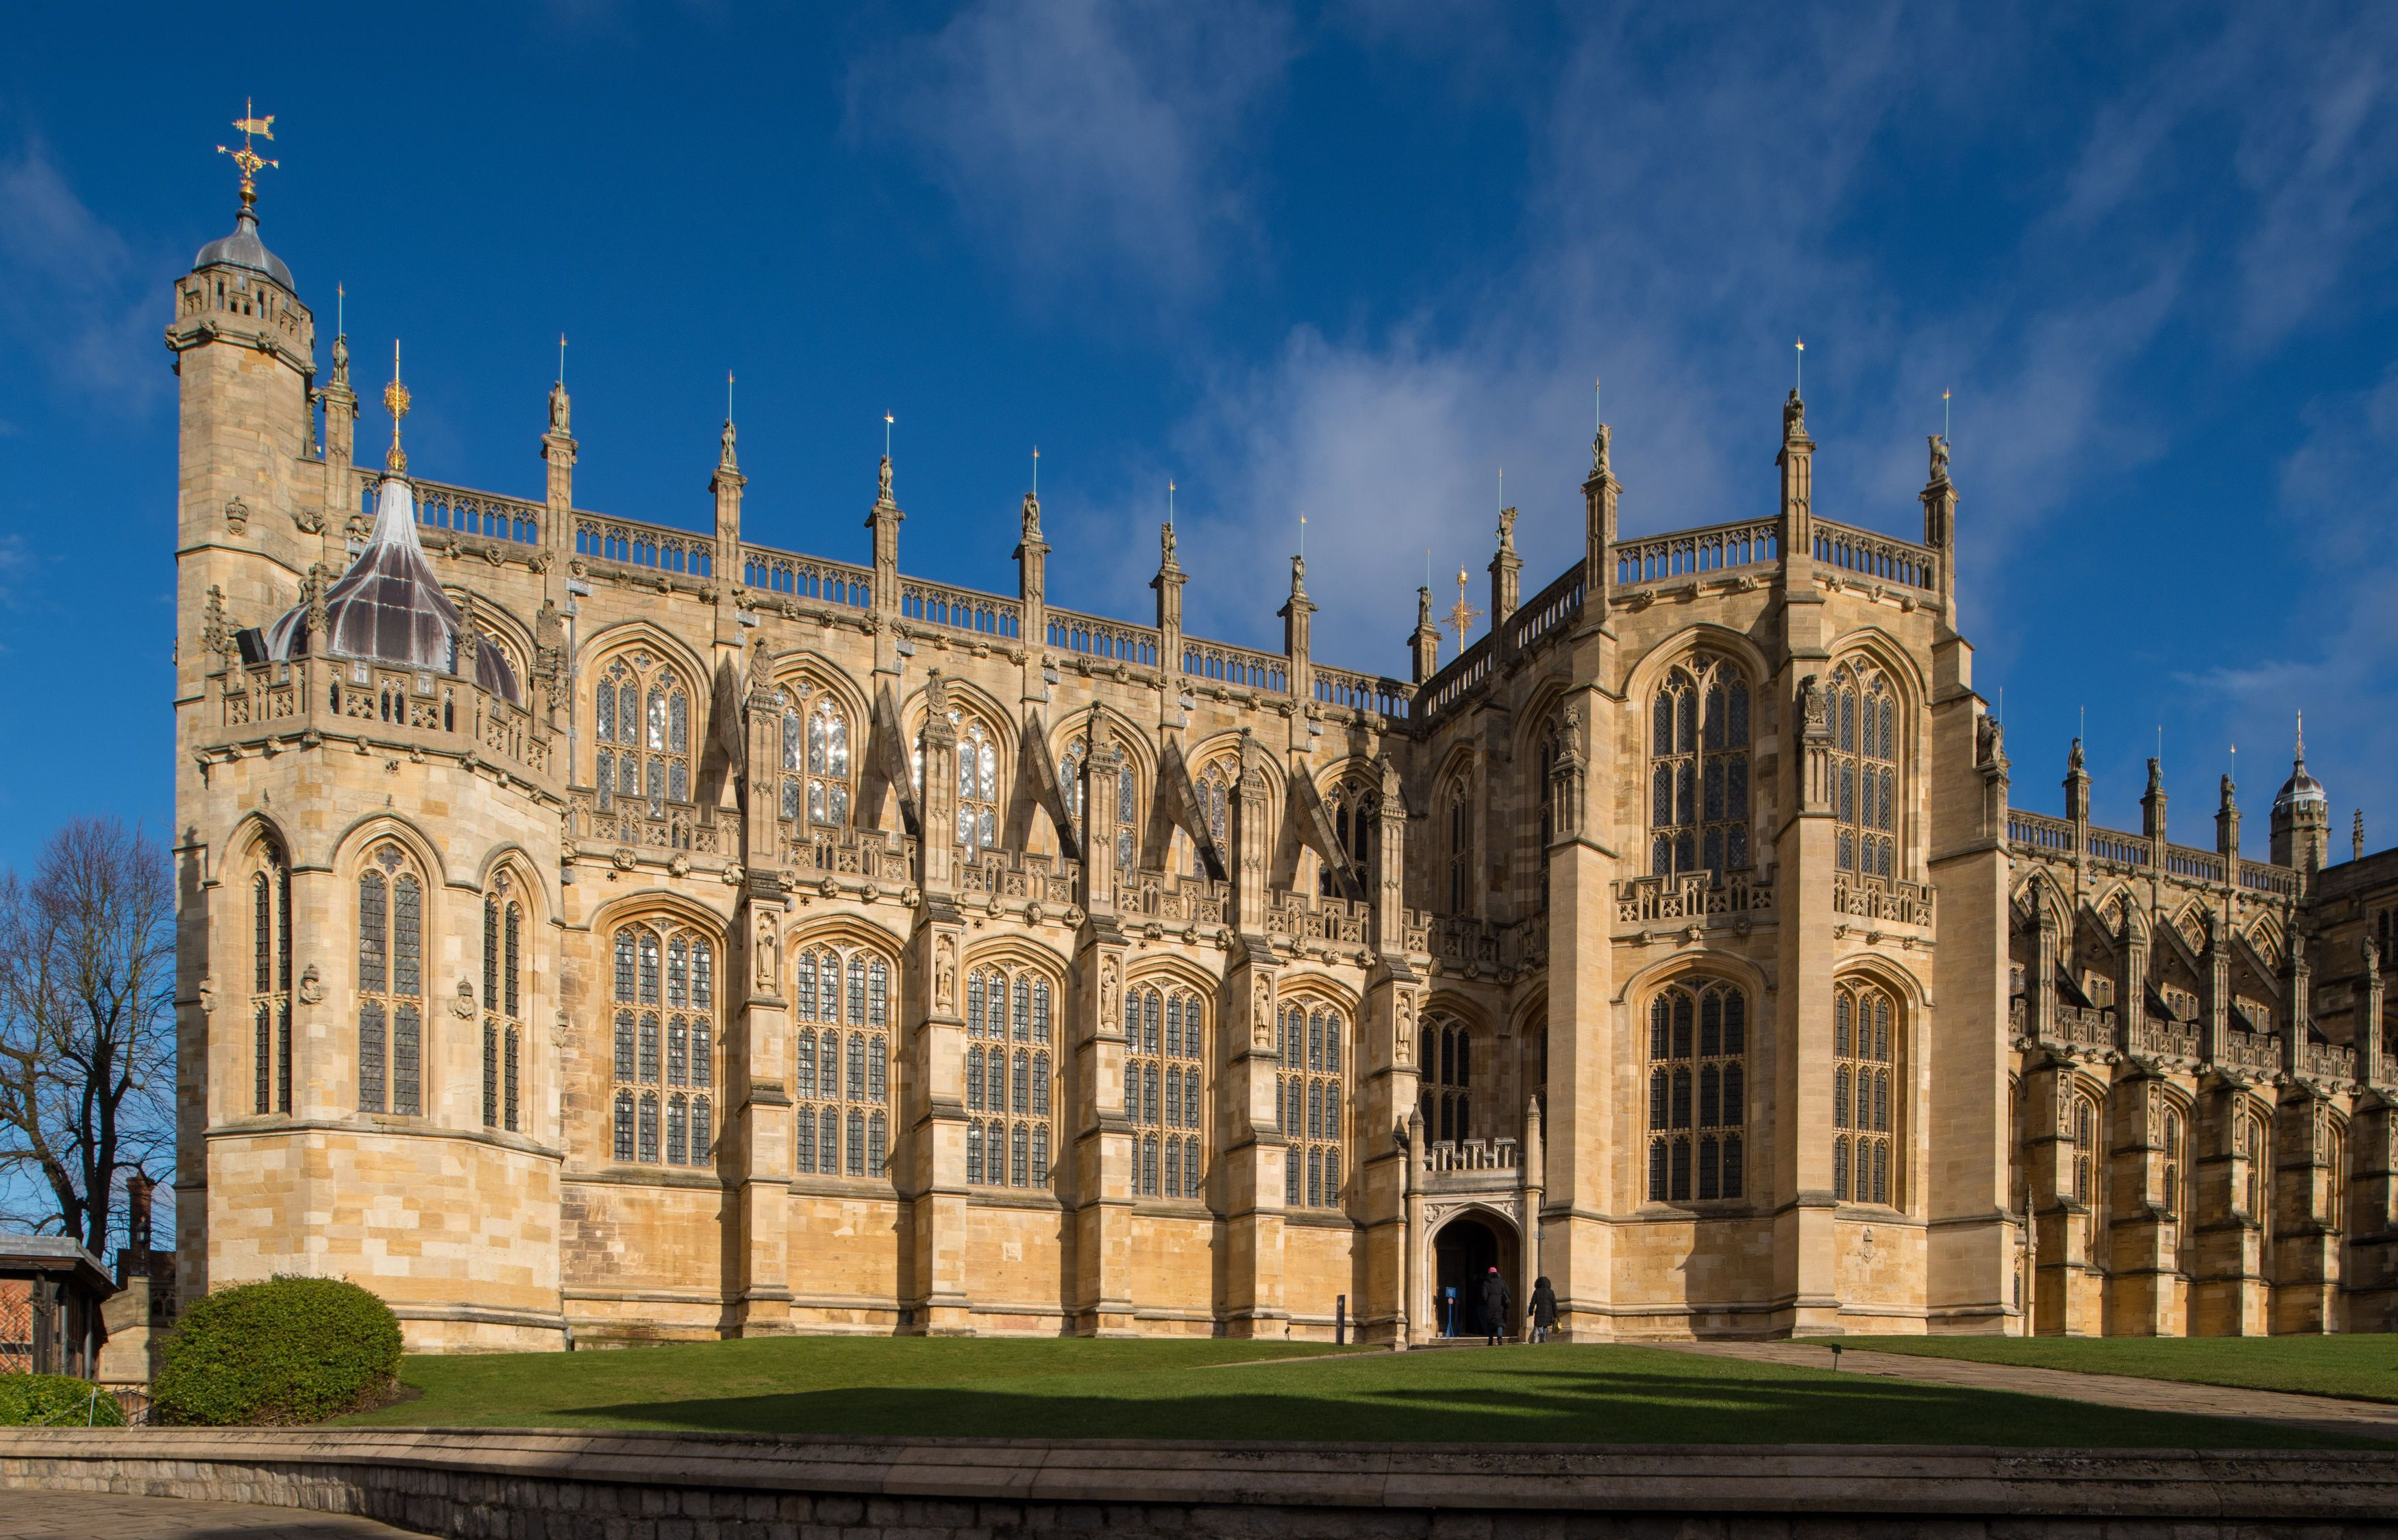 The outside of St. George's Chapel at Windsor Castle.